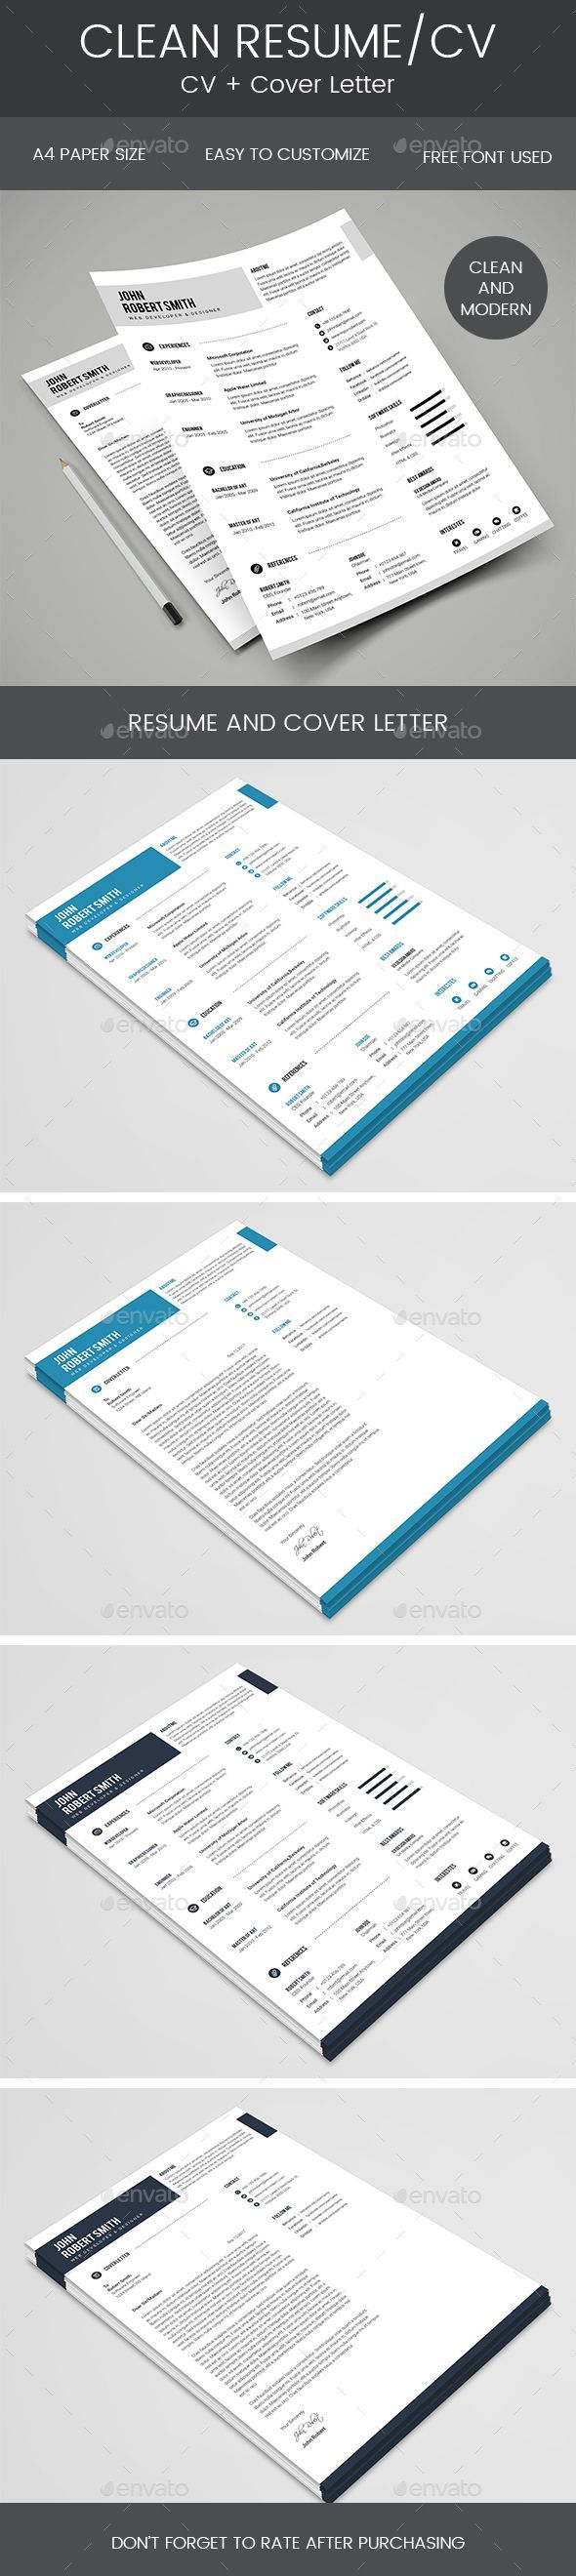 Clean Resume u0026 Cover Letter 400 best